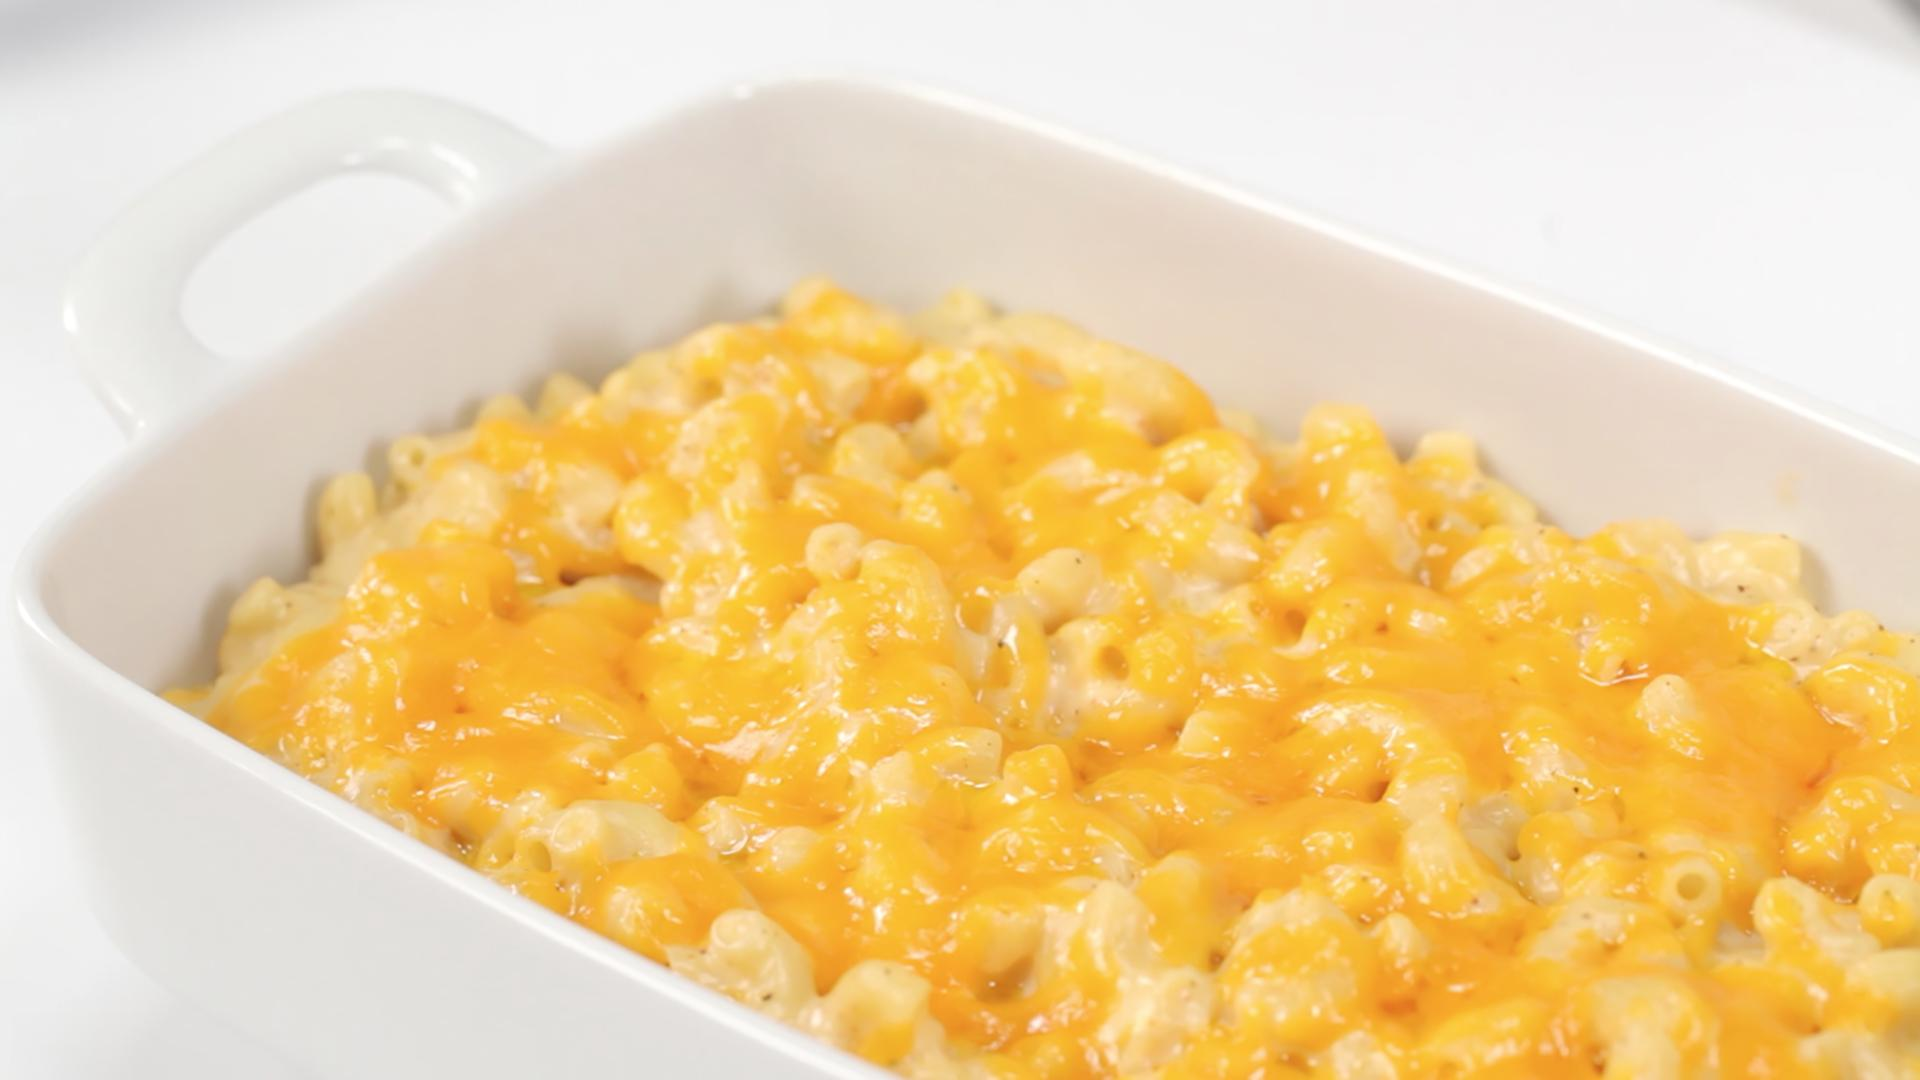 sc 1 st  Southern Living & Classic Baked Macaroni and Cheese Recipe - Southern Living